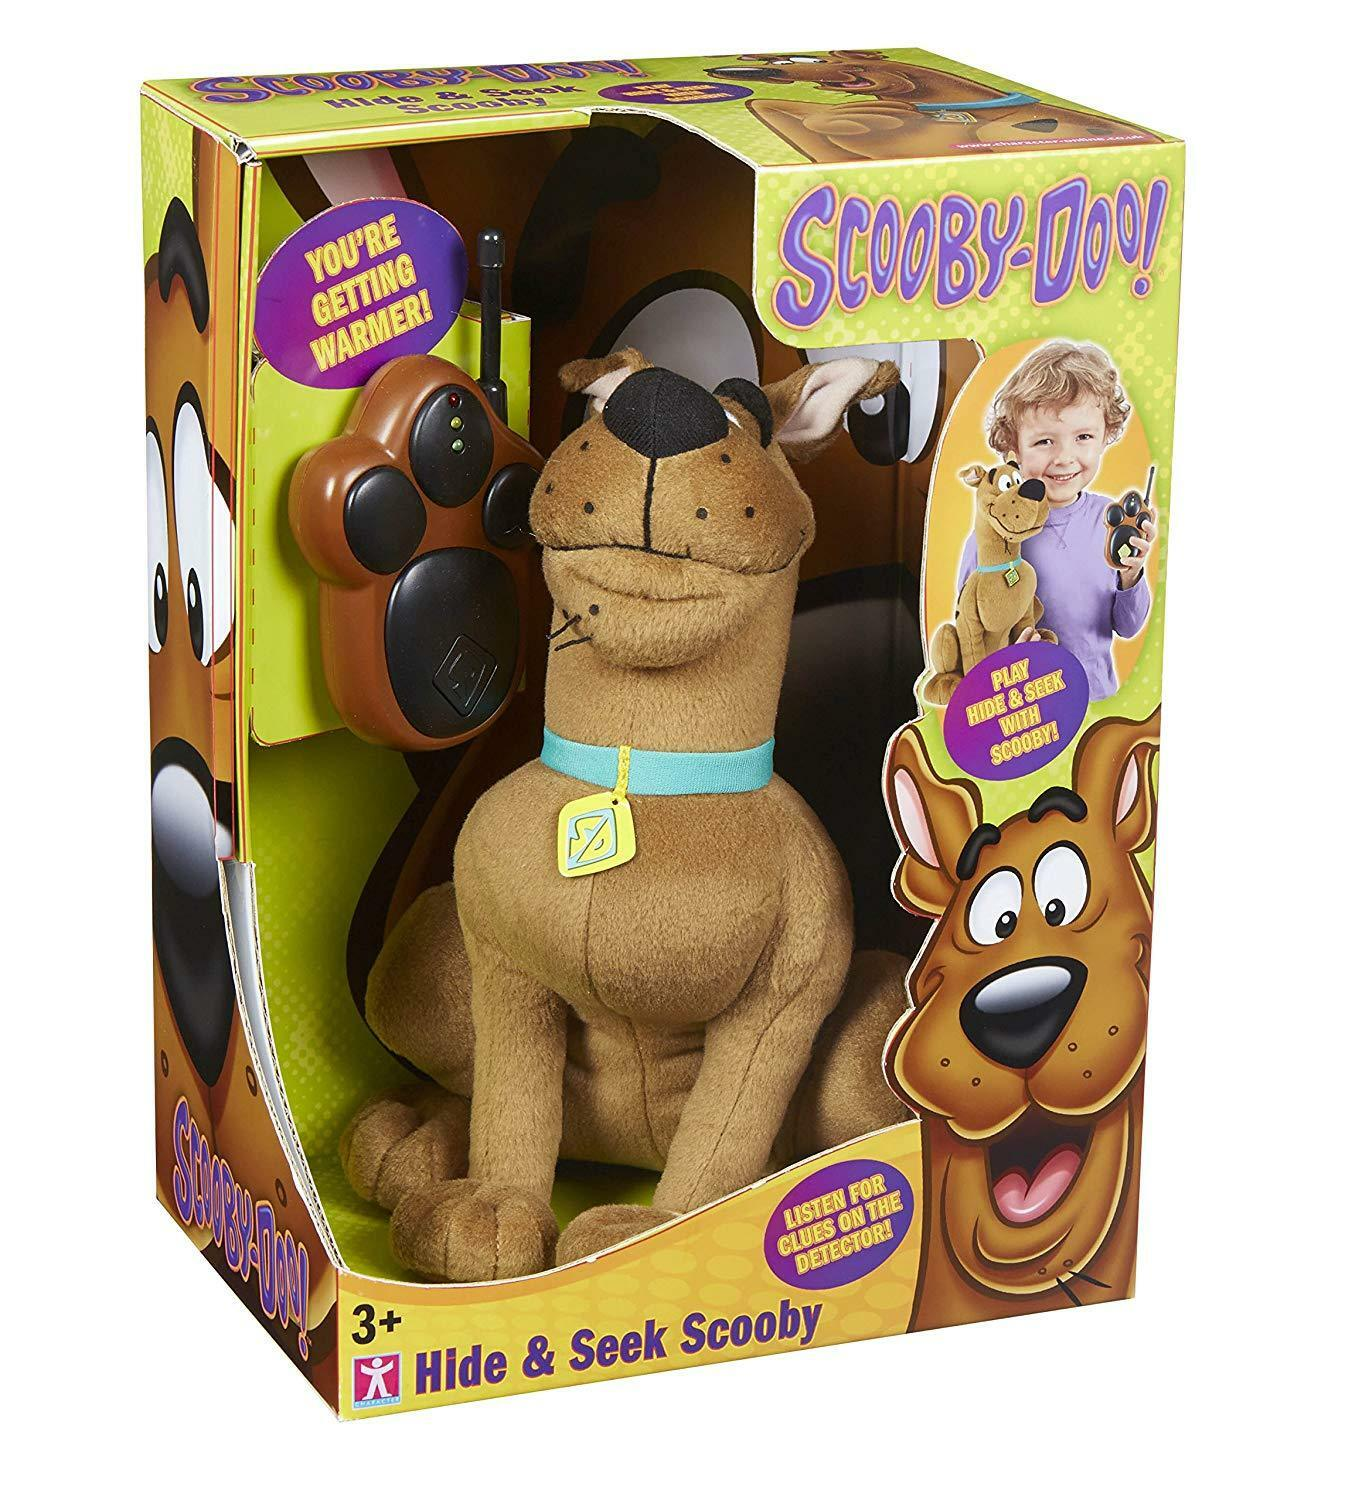 BRAND NEW BOXED TALKING REMOTE CONTROL 27INCH HIDE AND SEEK SCOOBY-DOO BUDDY